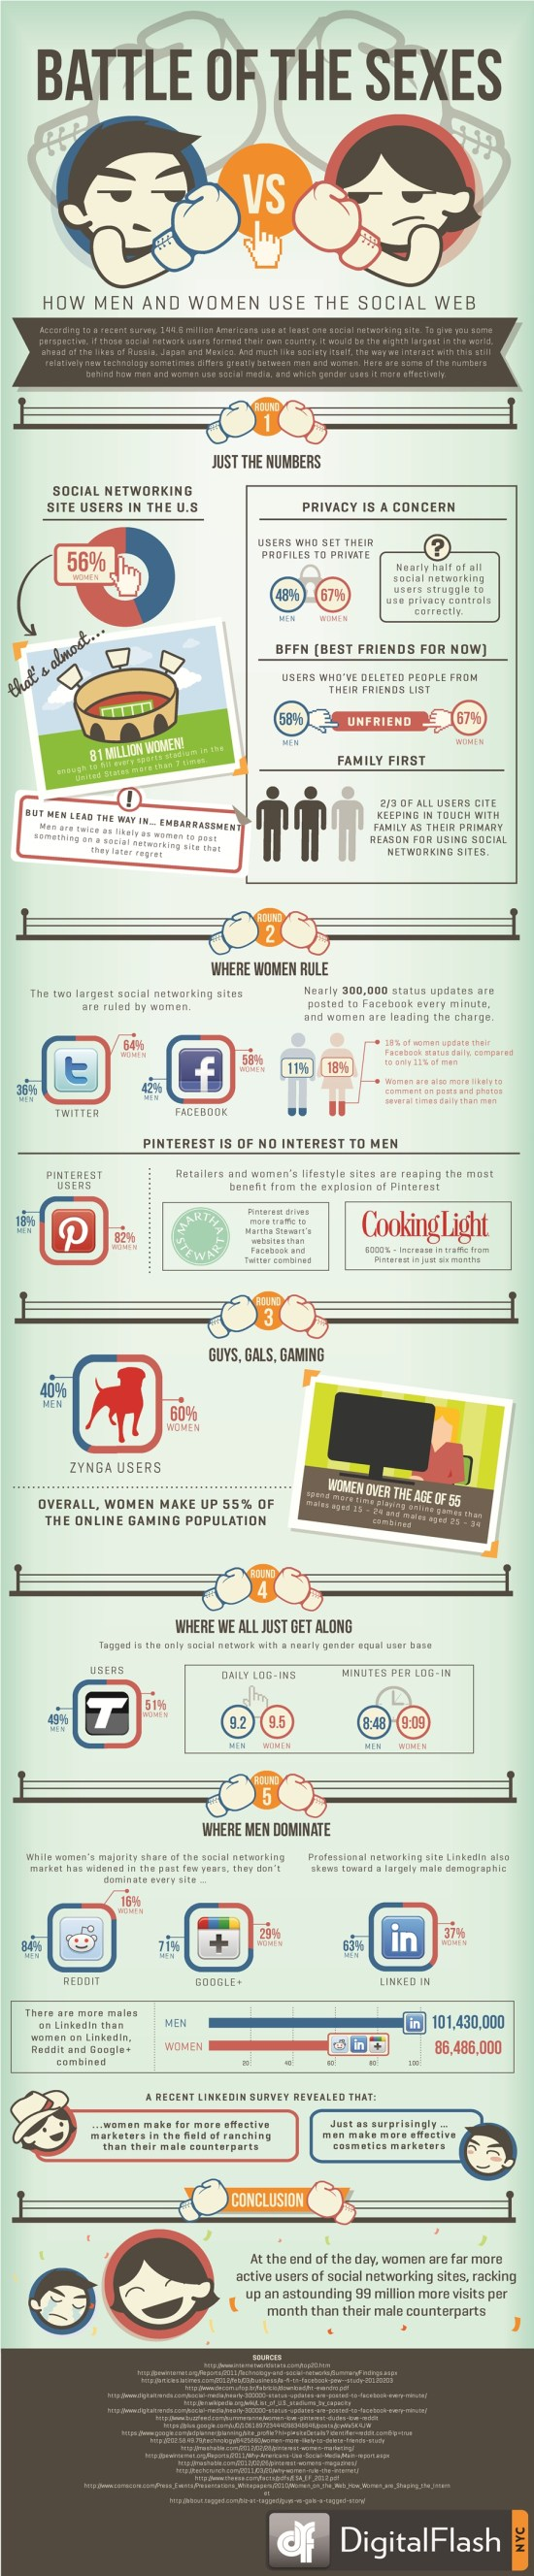 Infographic - Social Media Behavior Of Men vs. Women